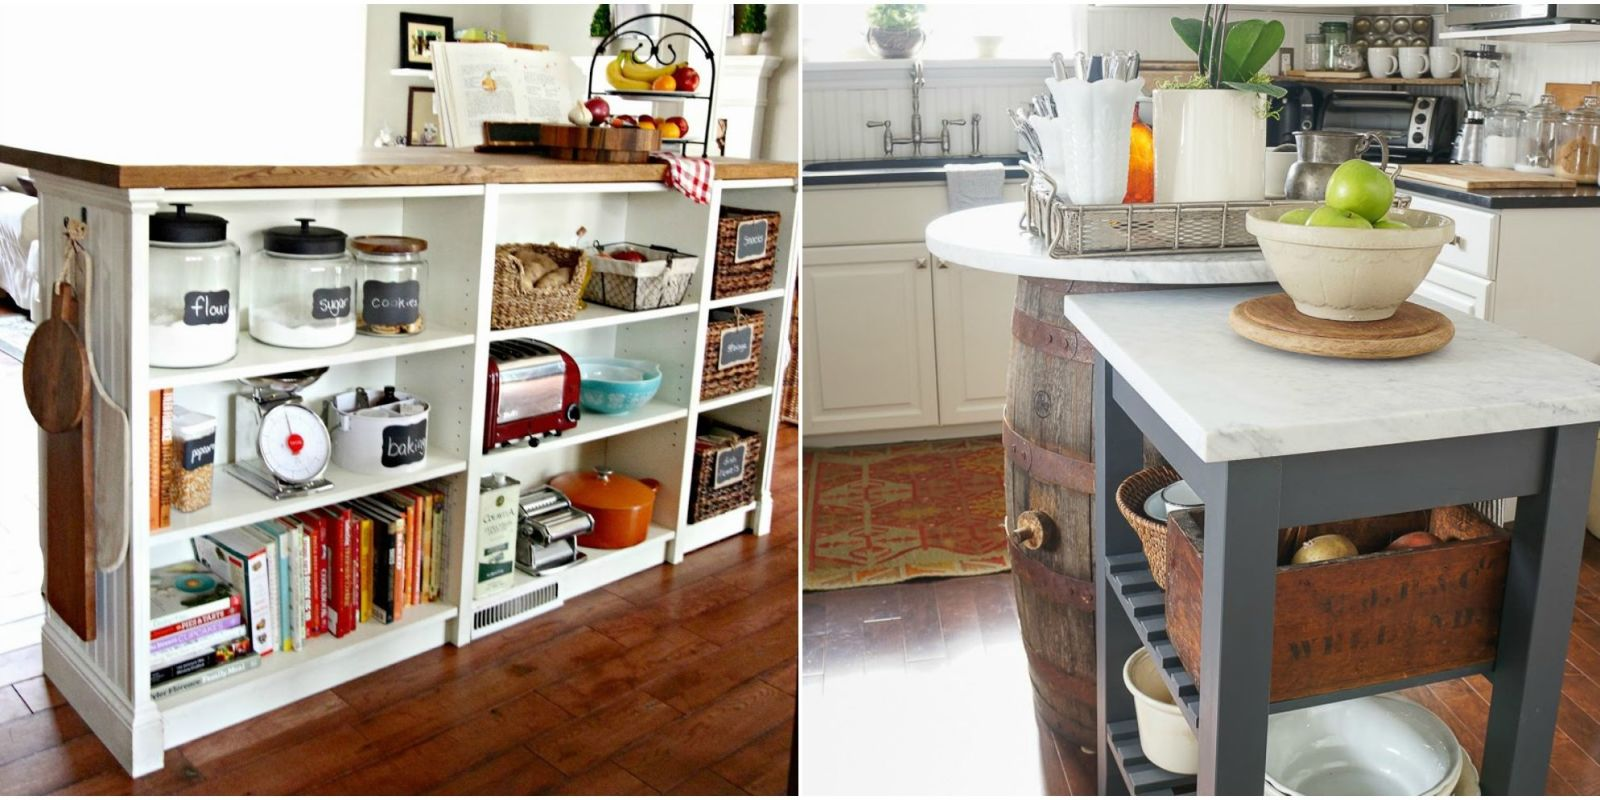 12 ikea kitchen ideas organize your kitchen with ikea hacks - Inspired diy ideas small kitchen ...